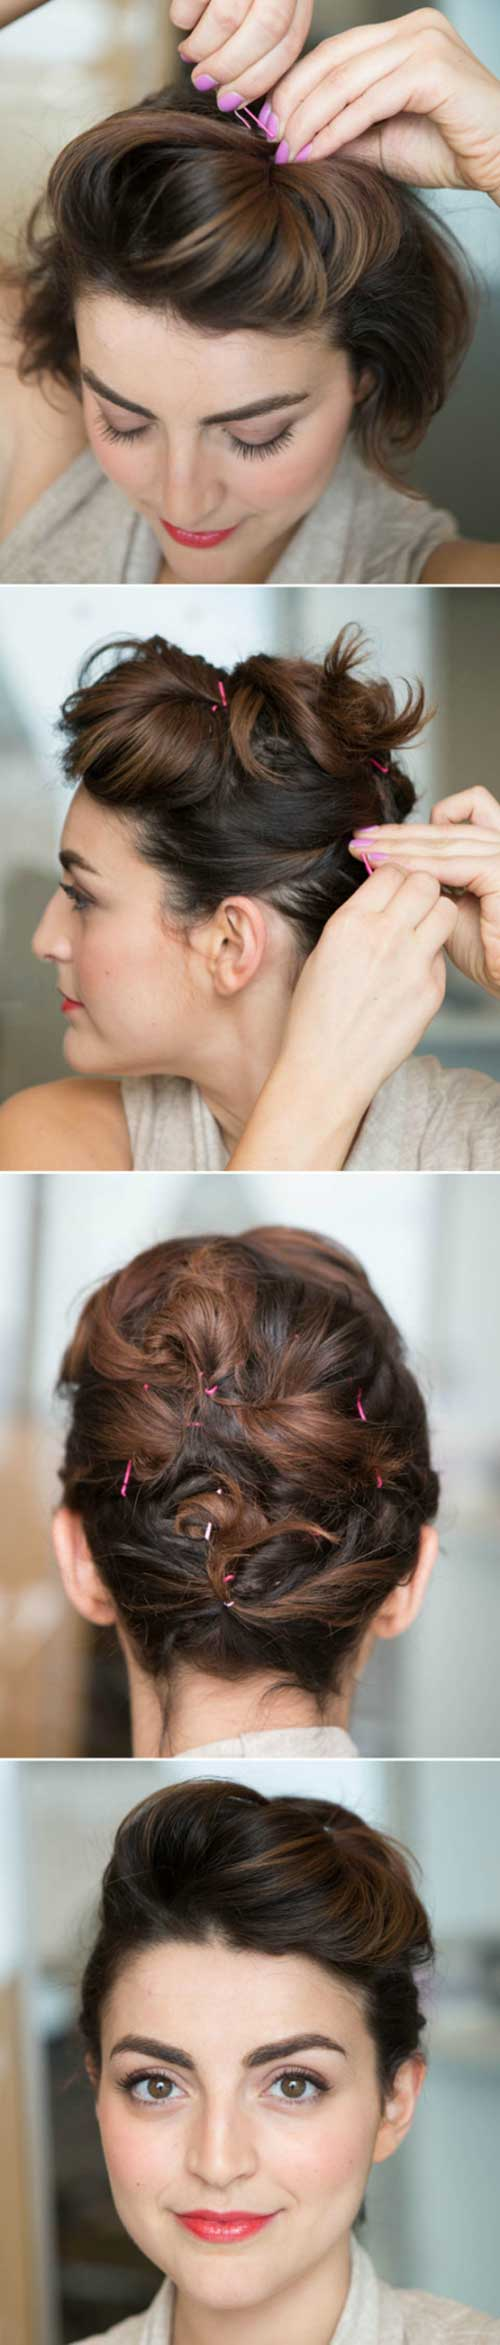 Styling Short Hair with Bobby Pins